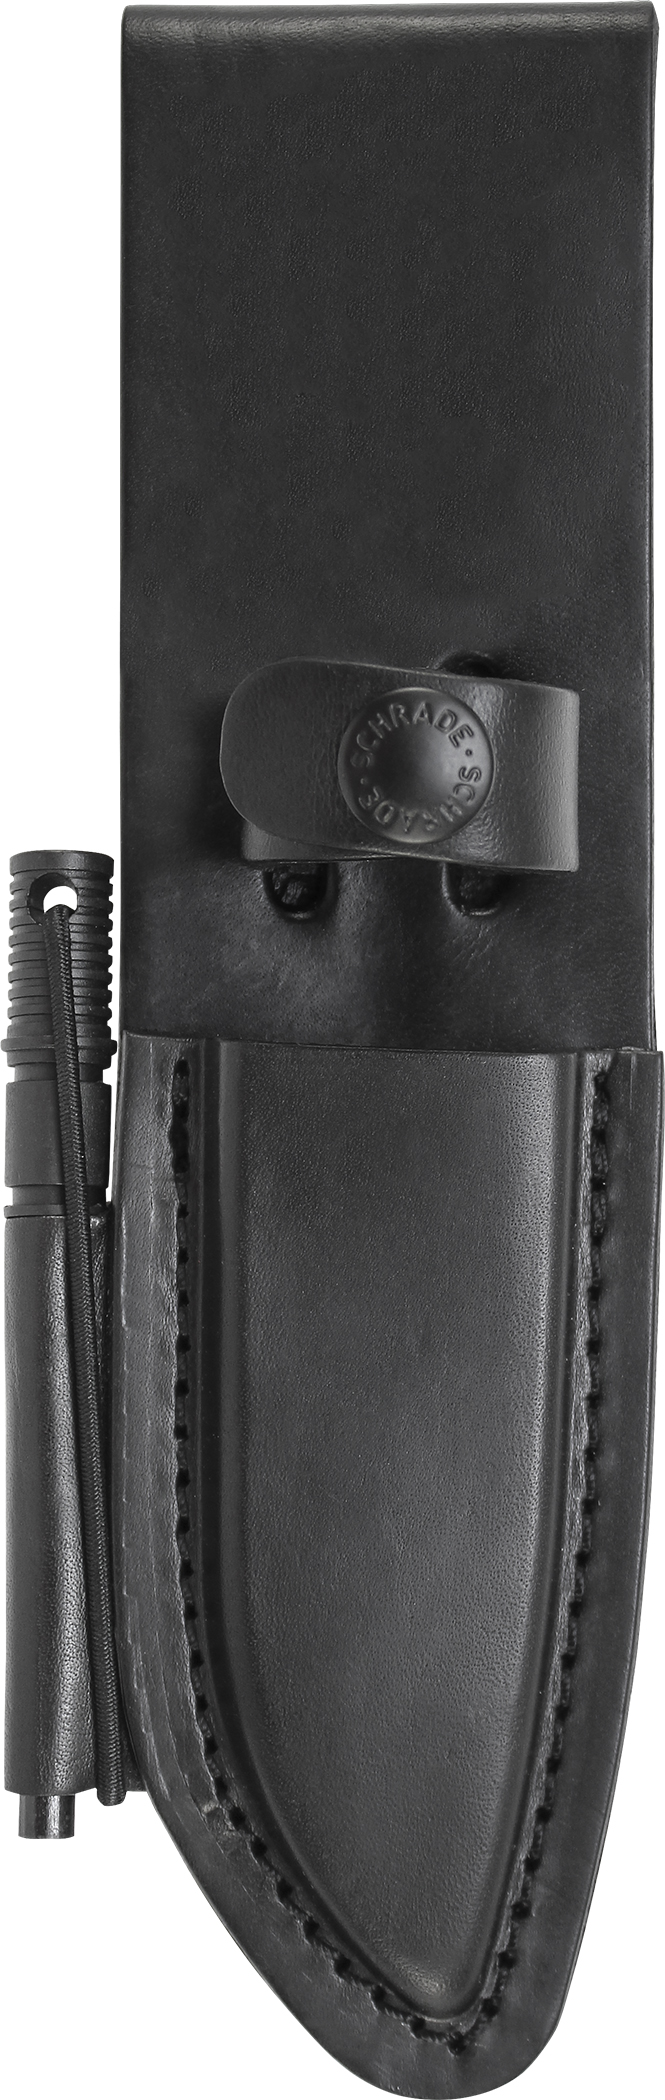 LS56 - Schrade Leather Sheath w/Ferro Rod For SCHF56 Model